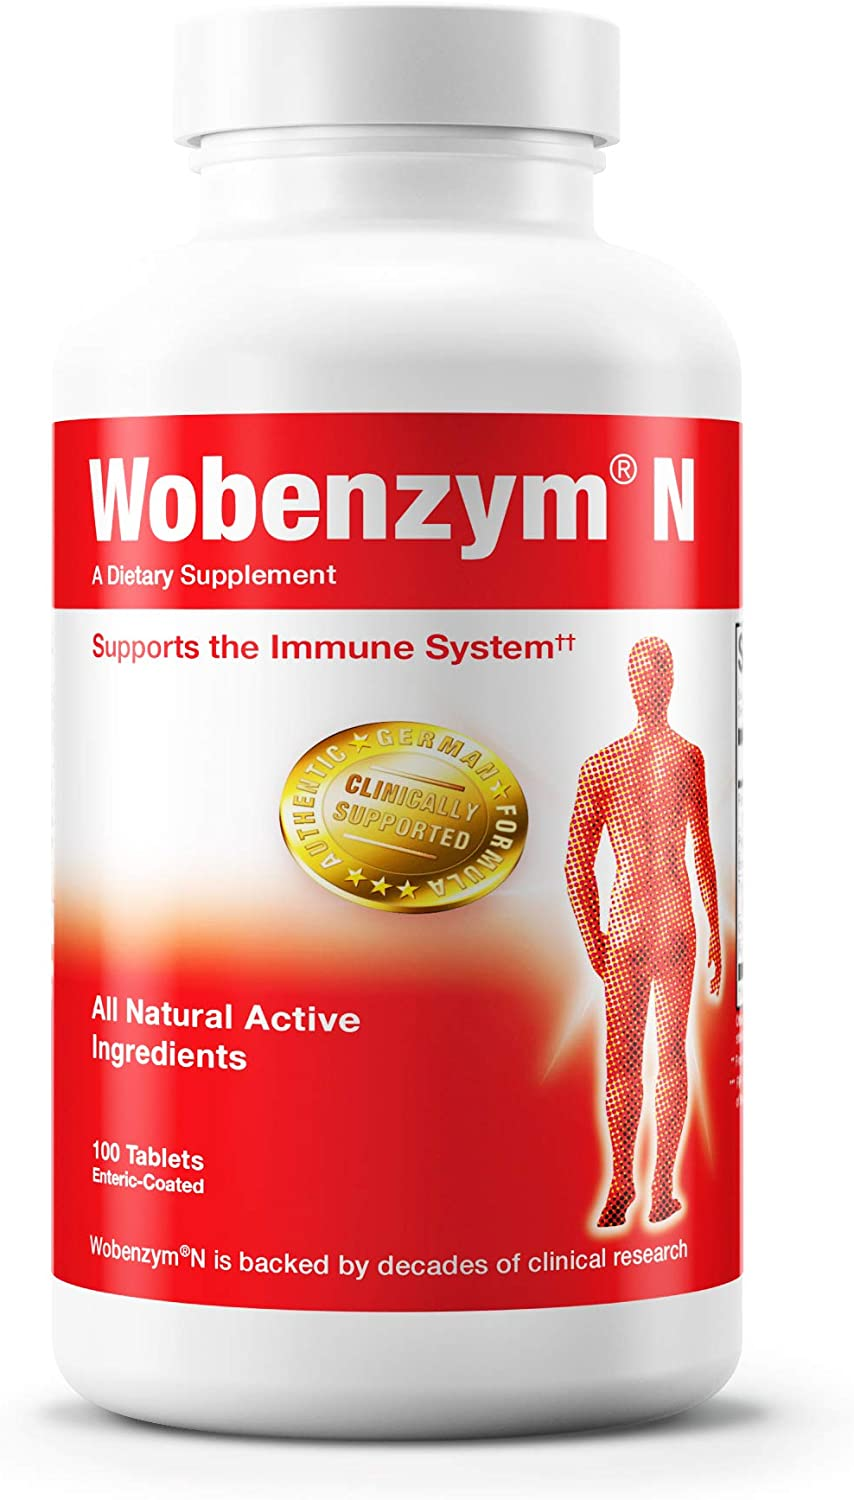 Wobenzym N | Authentic German Supplement for Immune Support, Digestive Enzymes, and Joints* | 100 Tablets